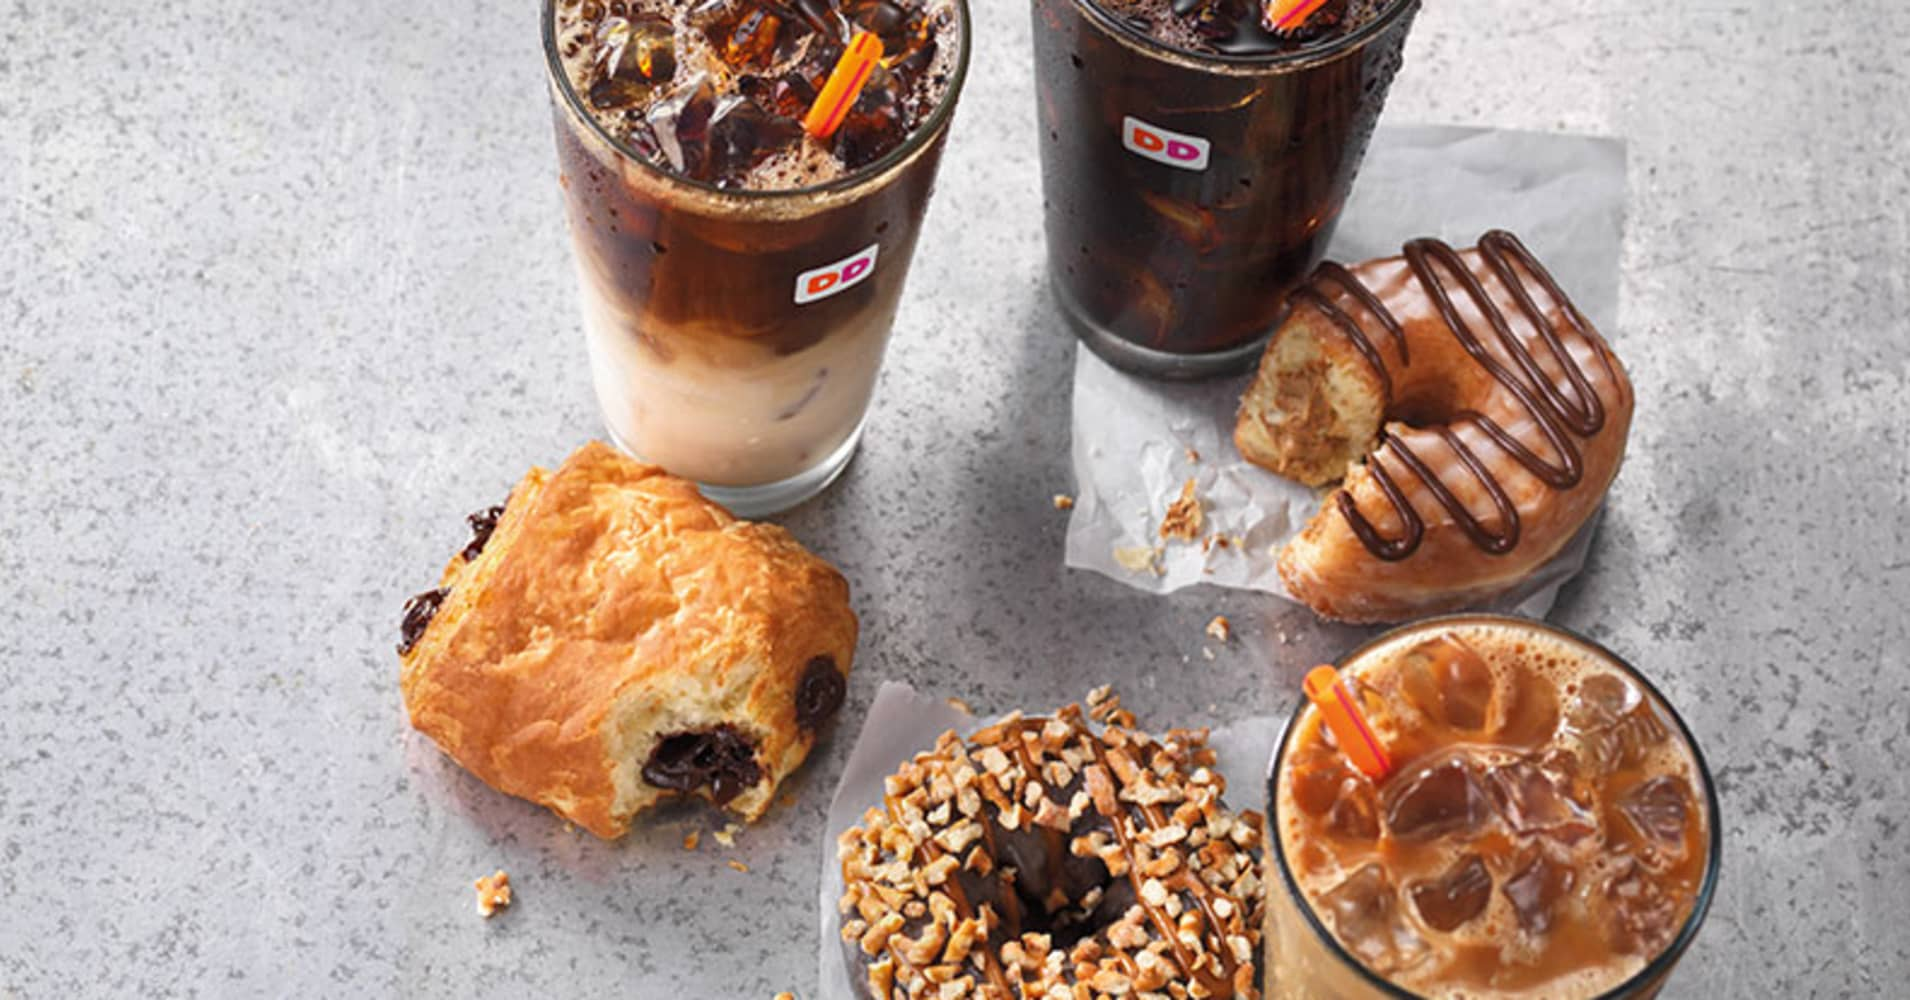 8 new Dunkin' Donuts items to try this spring